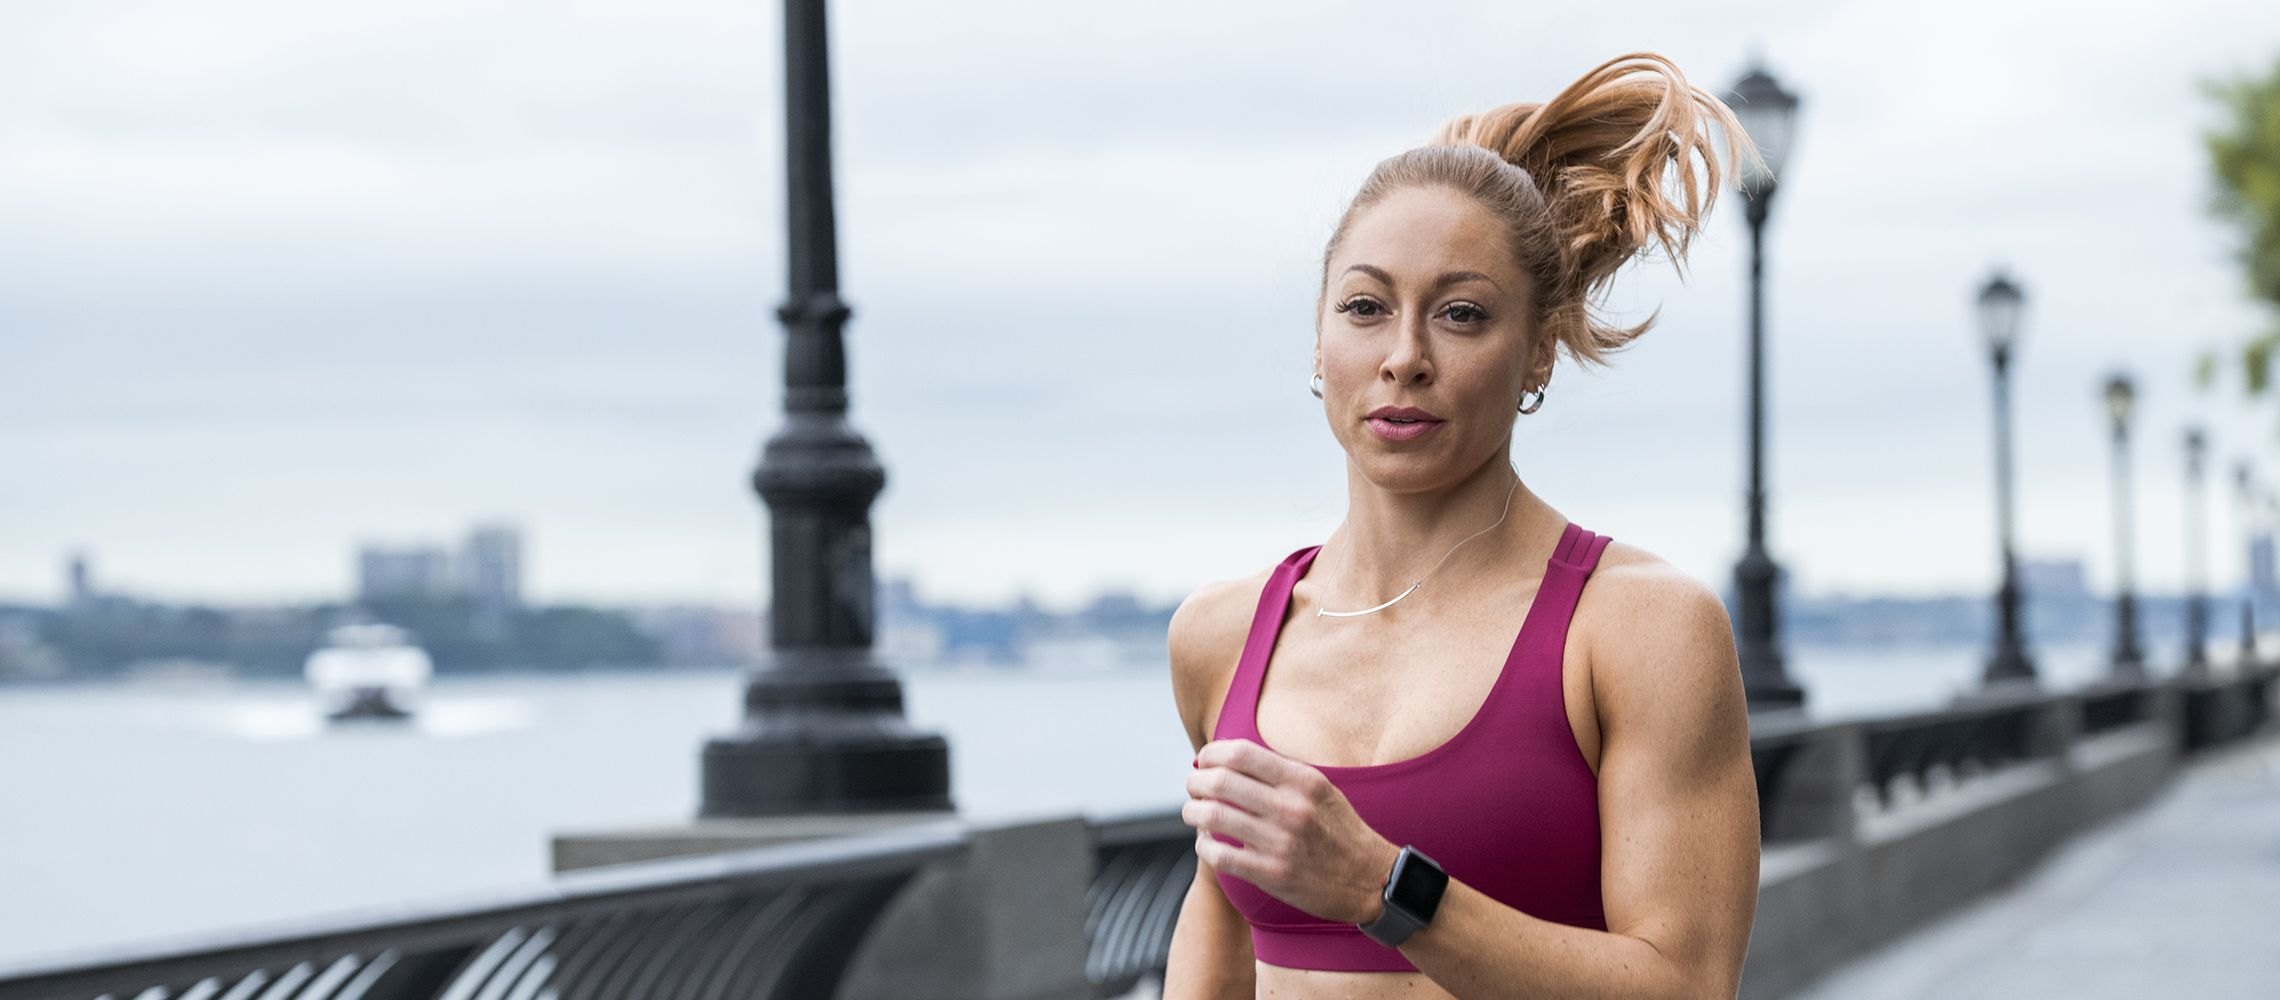 How a meditative workout can change your perspective the